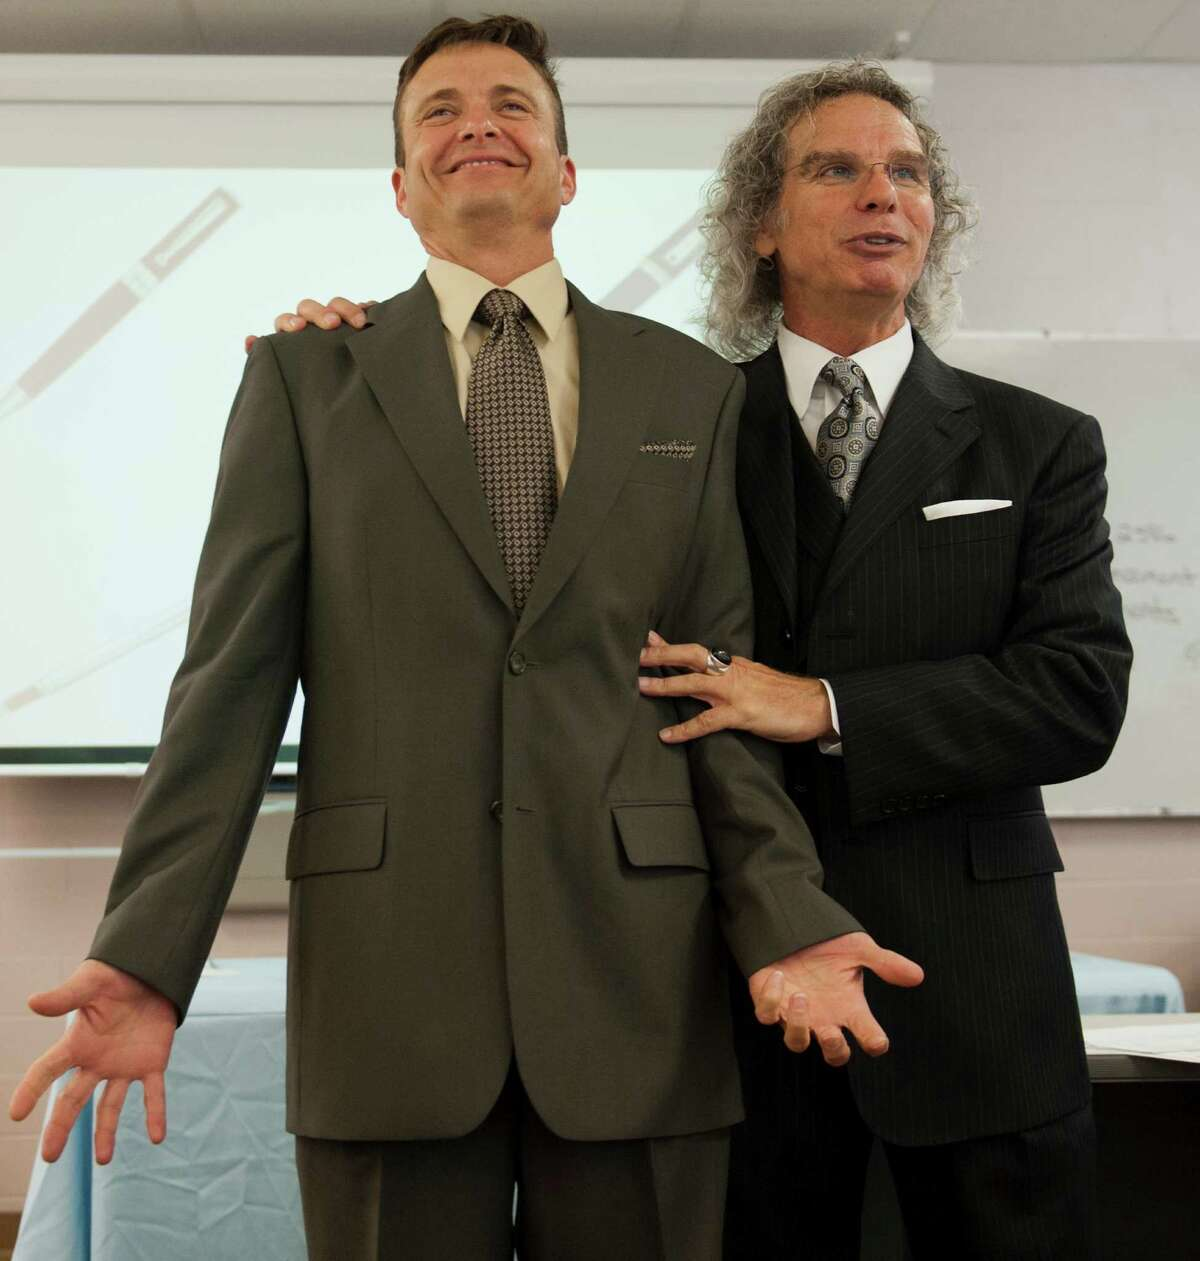 Col. Jeffrey Brlecic, left, receives a critique that his suit is too long from master tailor Sofio Barone in Fort Meade, Md., for a military image-consulting program for officers entering civilian life.